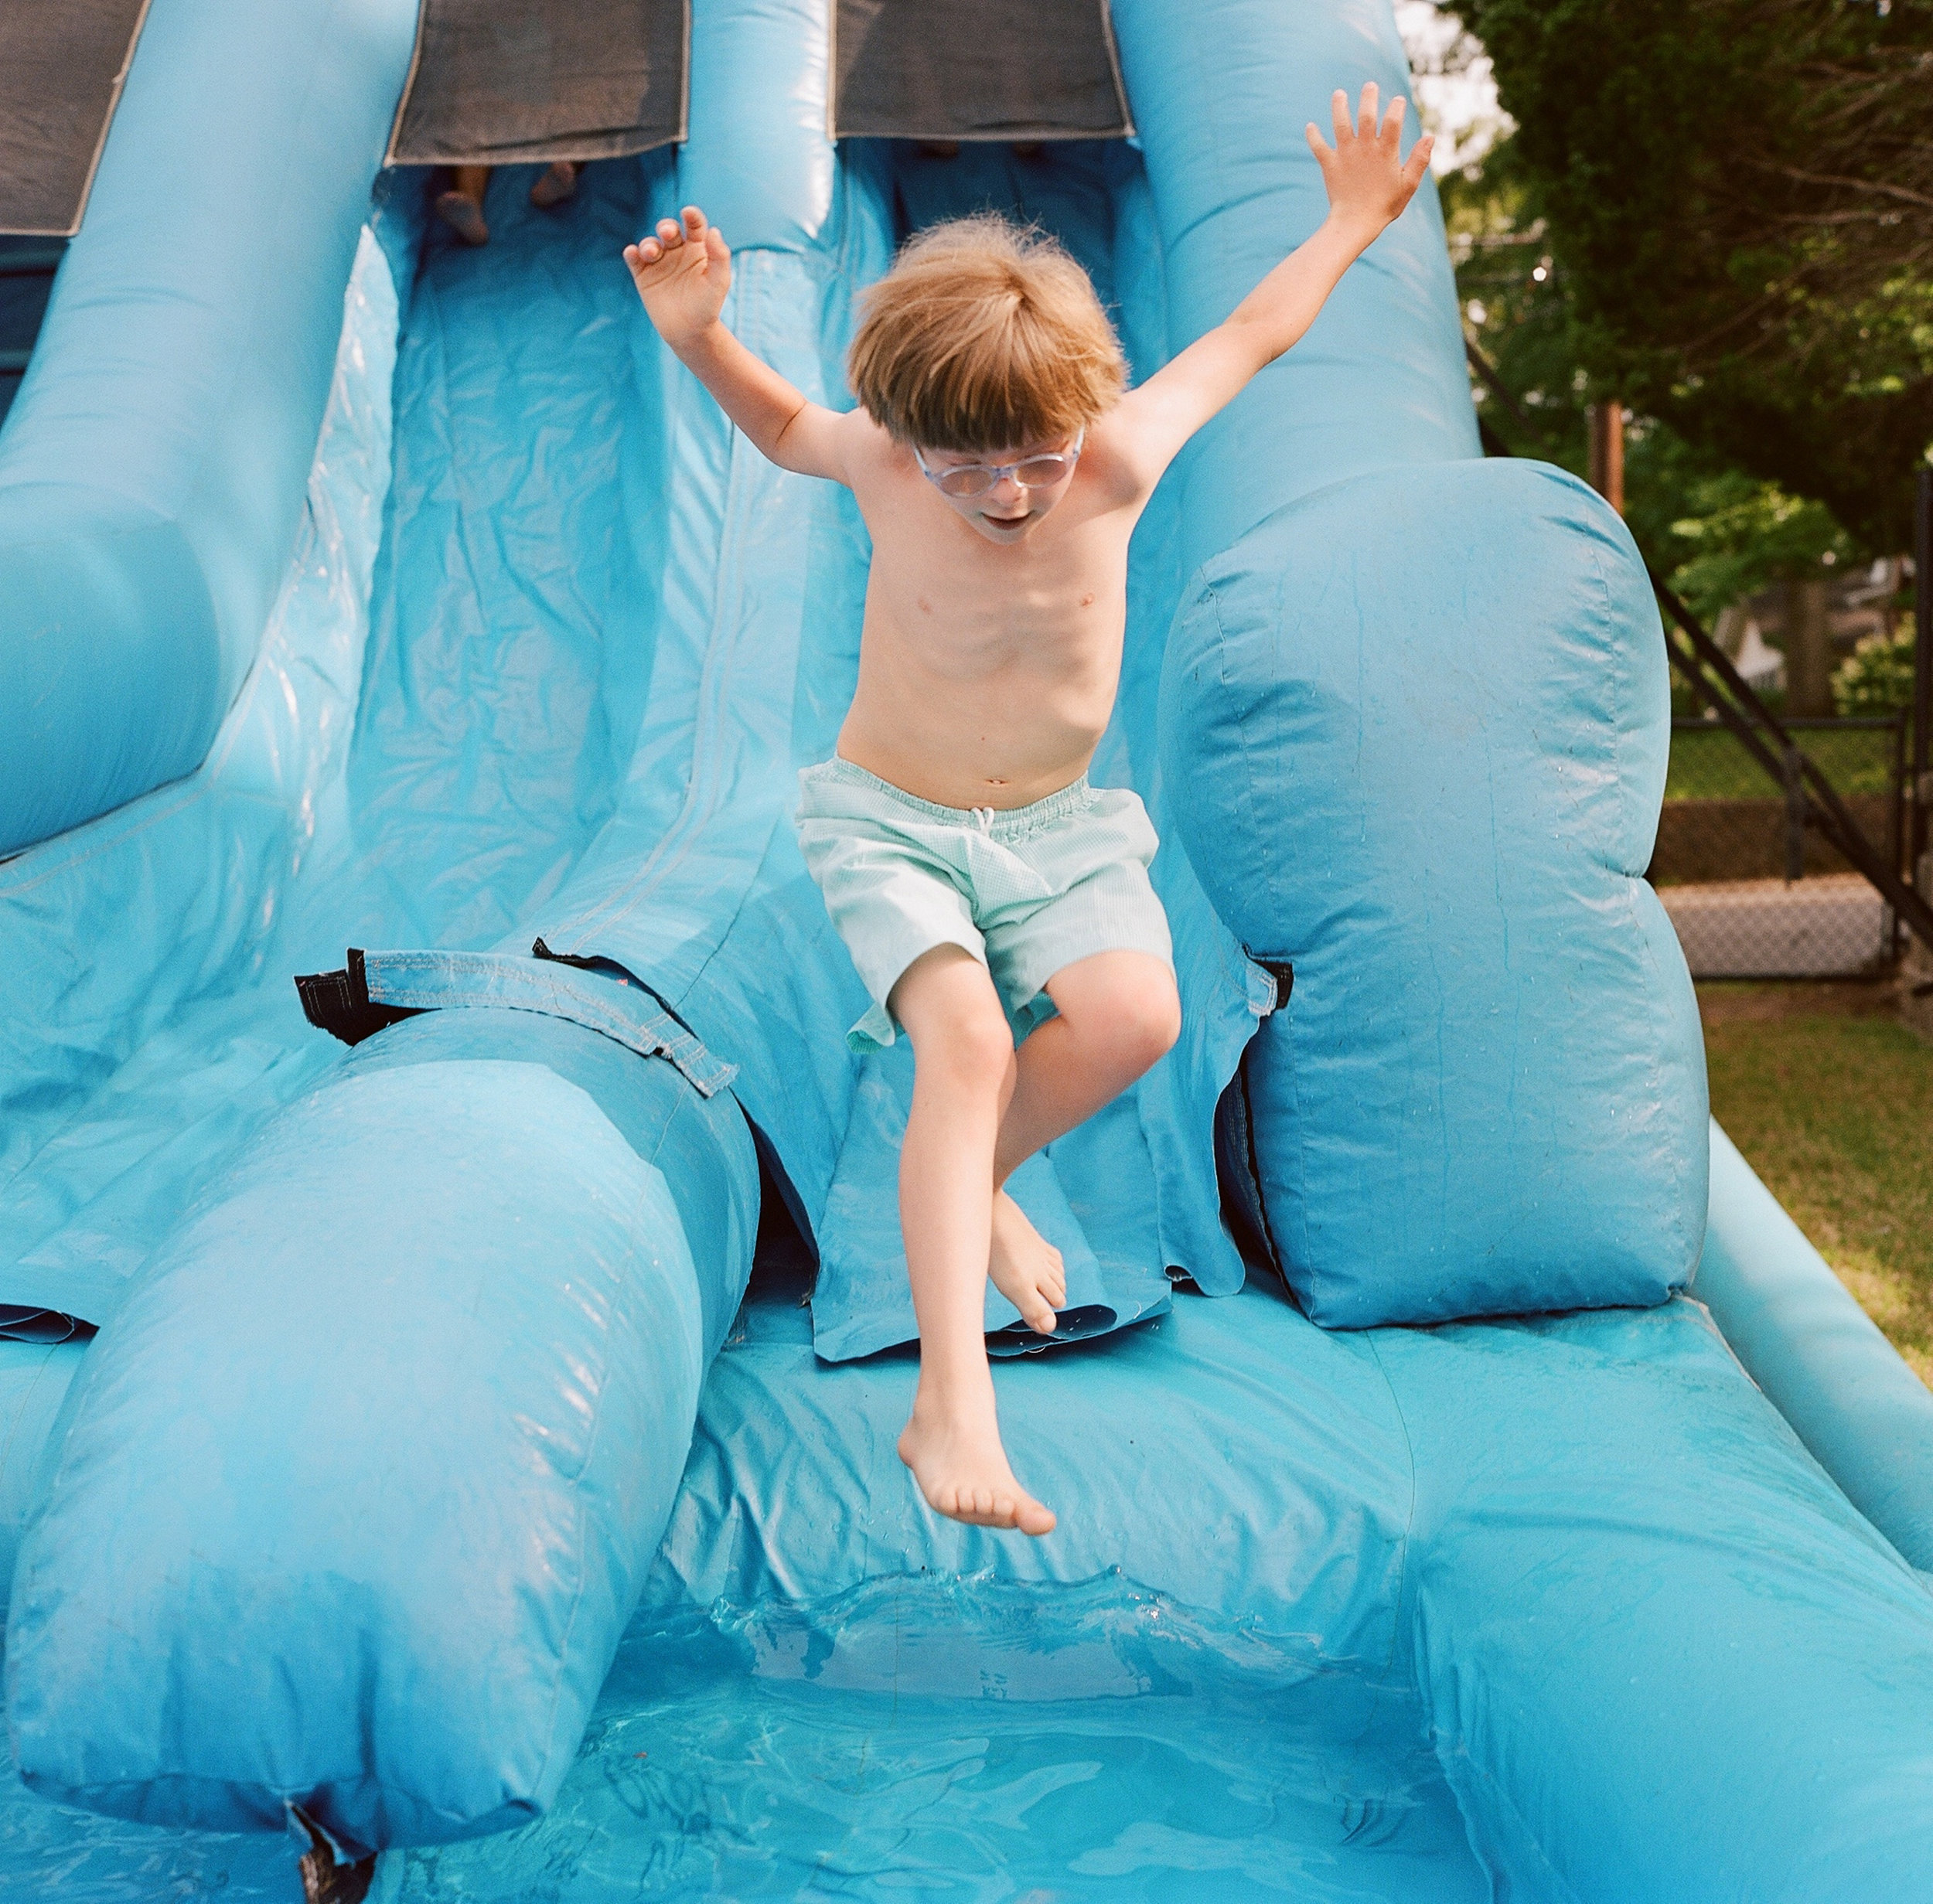 09_Youth Waterslide - 010.jpg